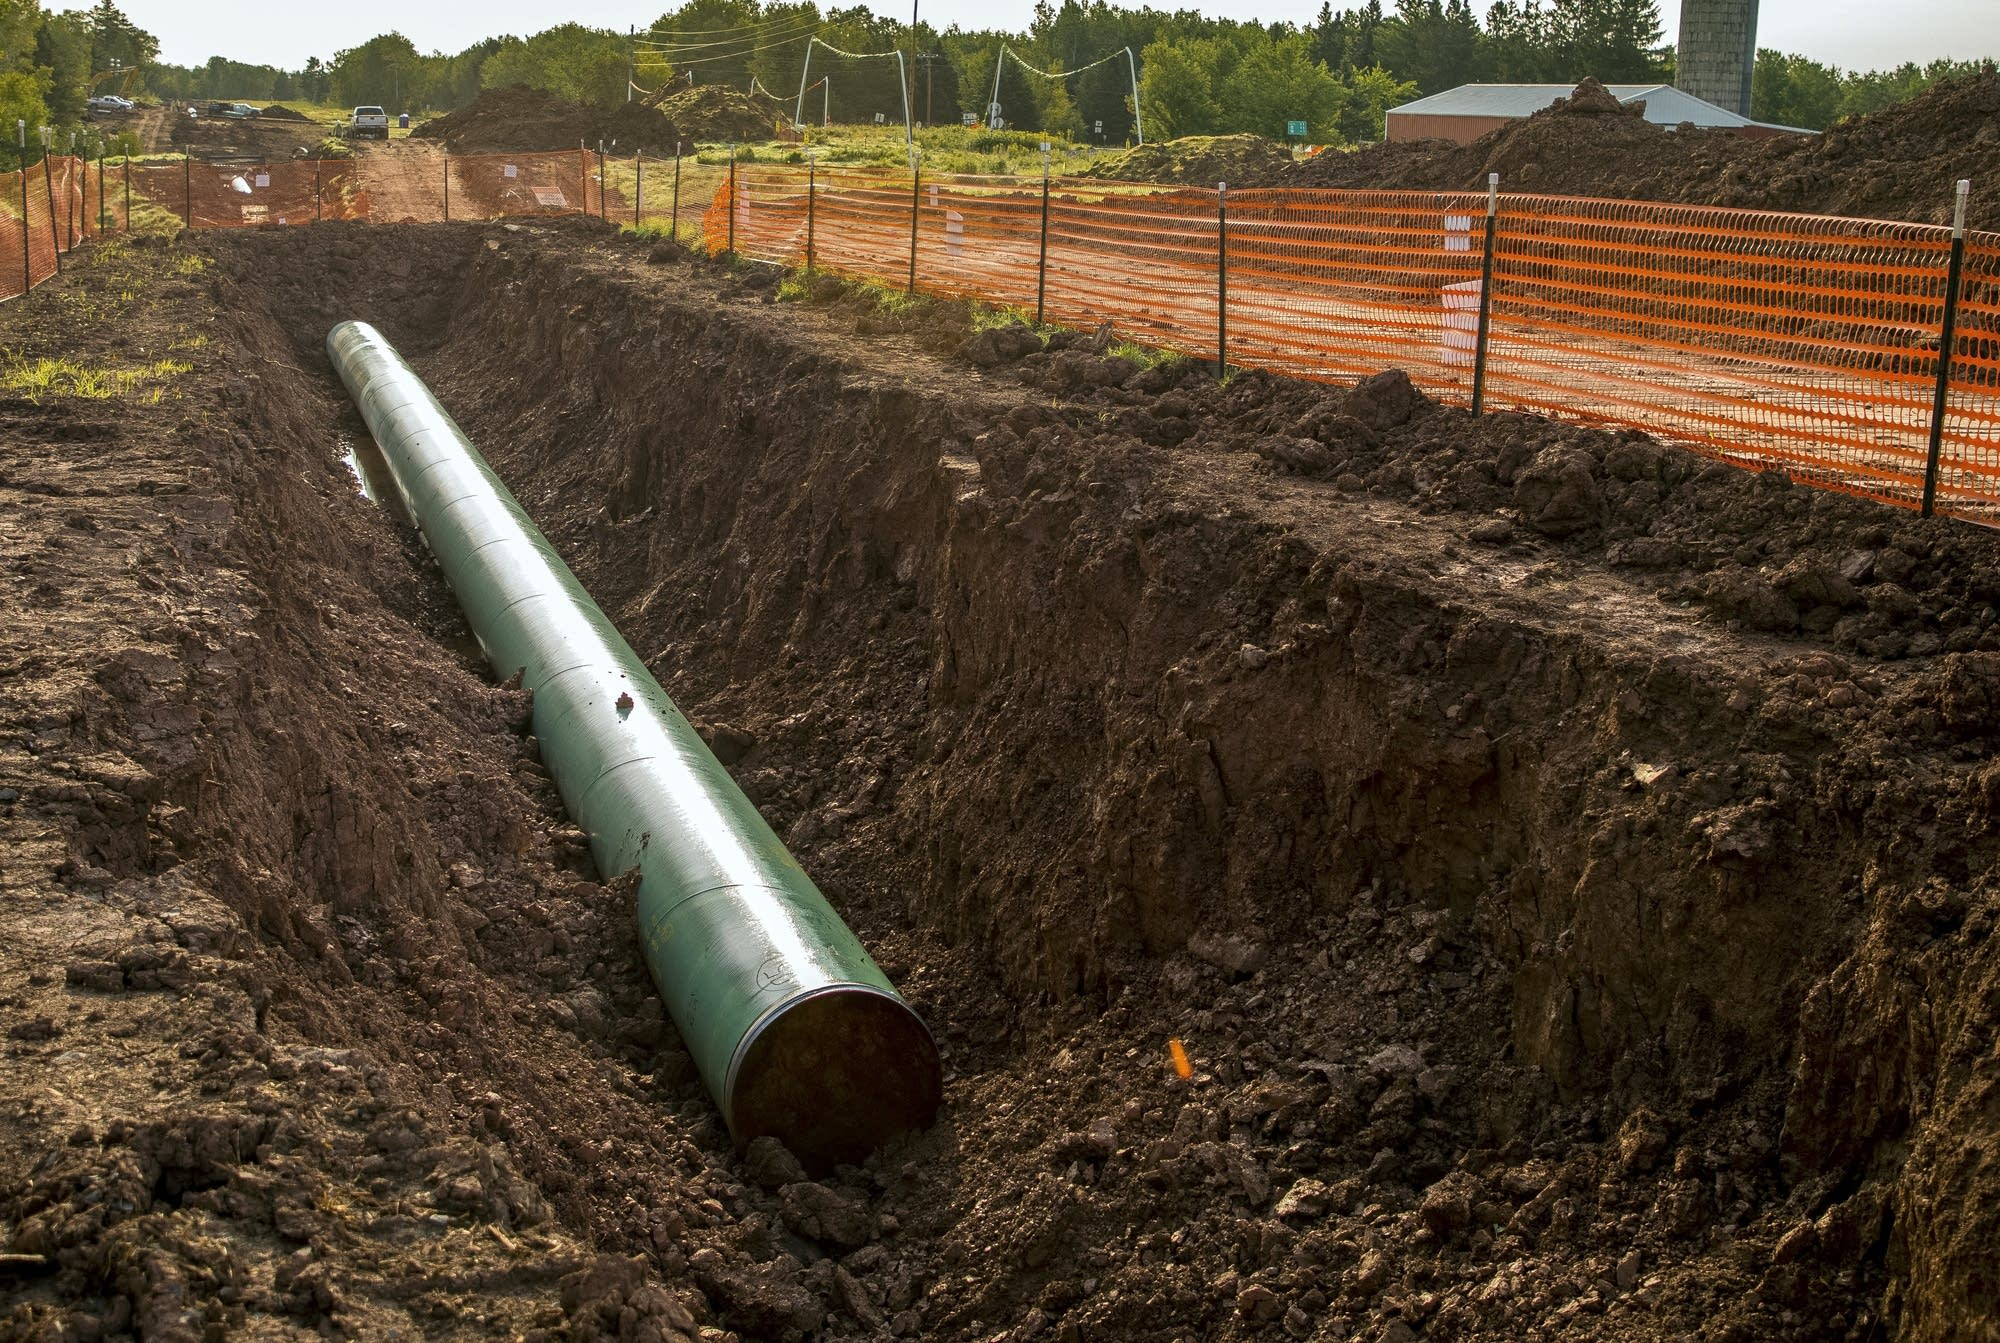 A new section of pipeline sits across the street from a farm.